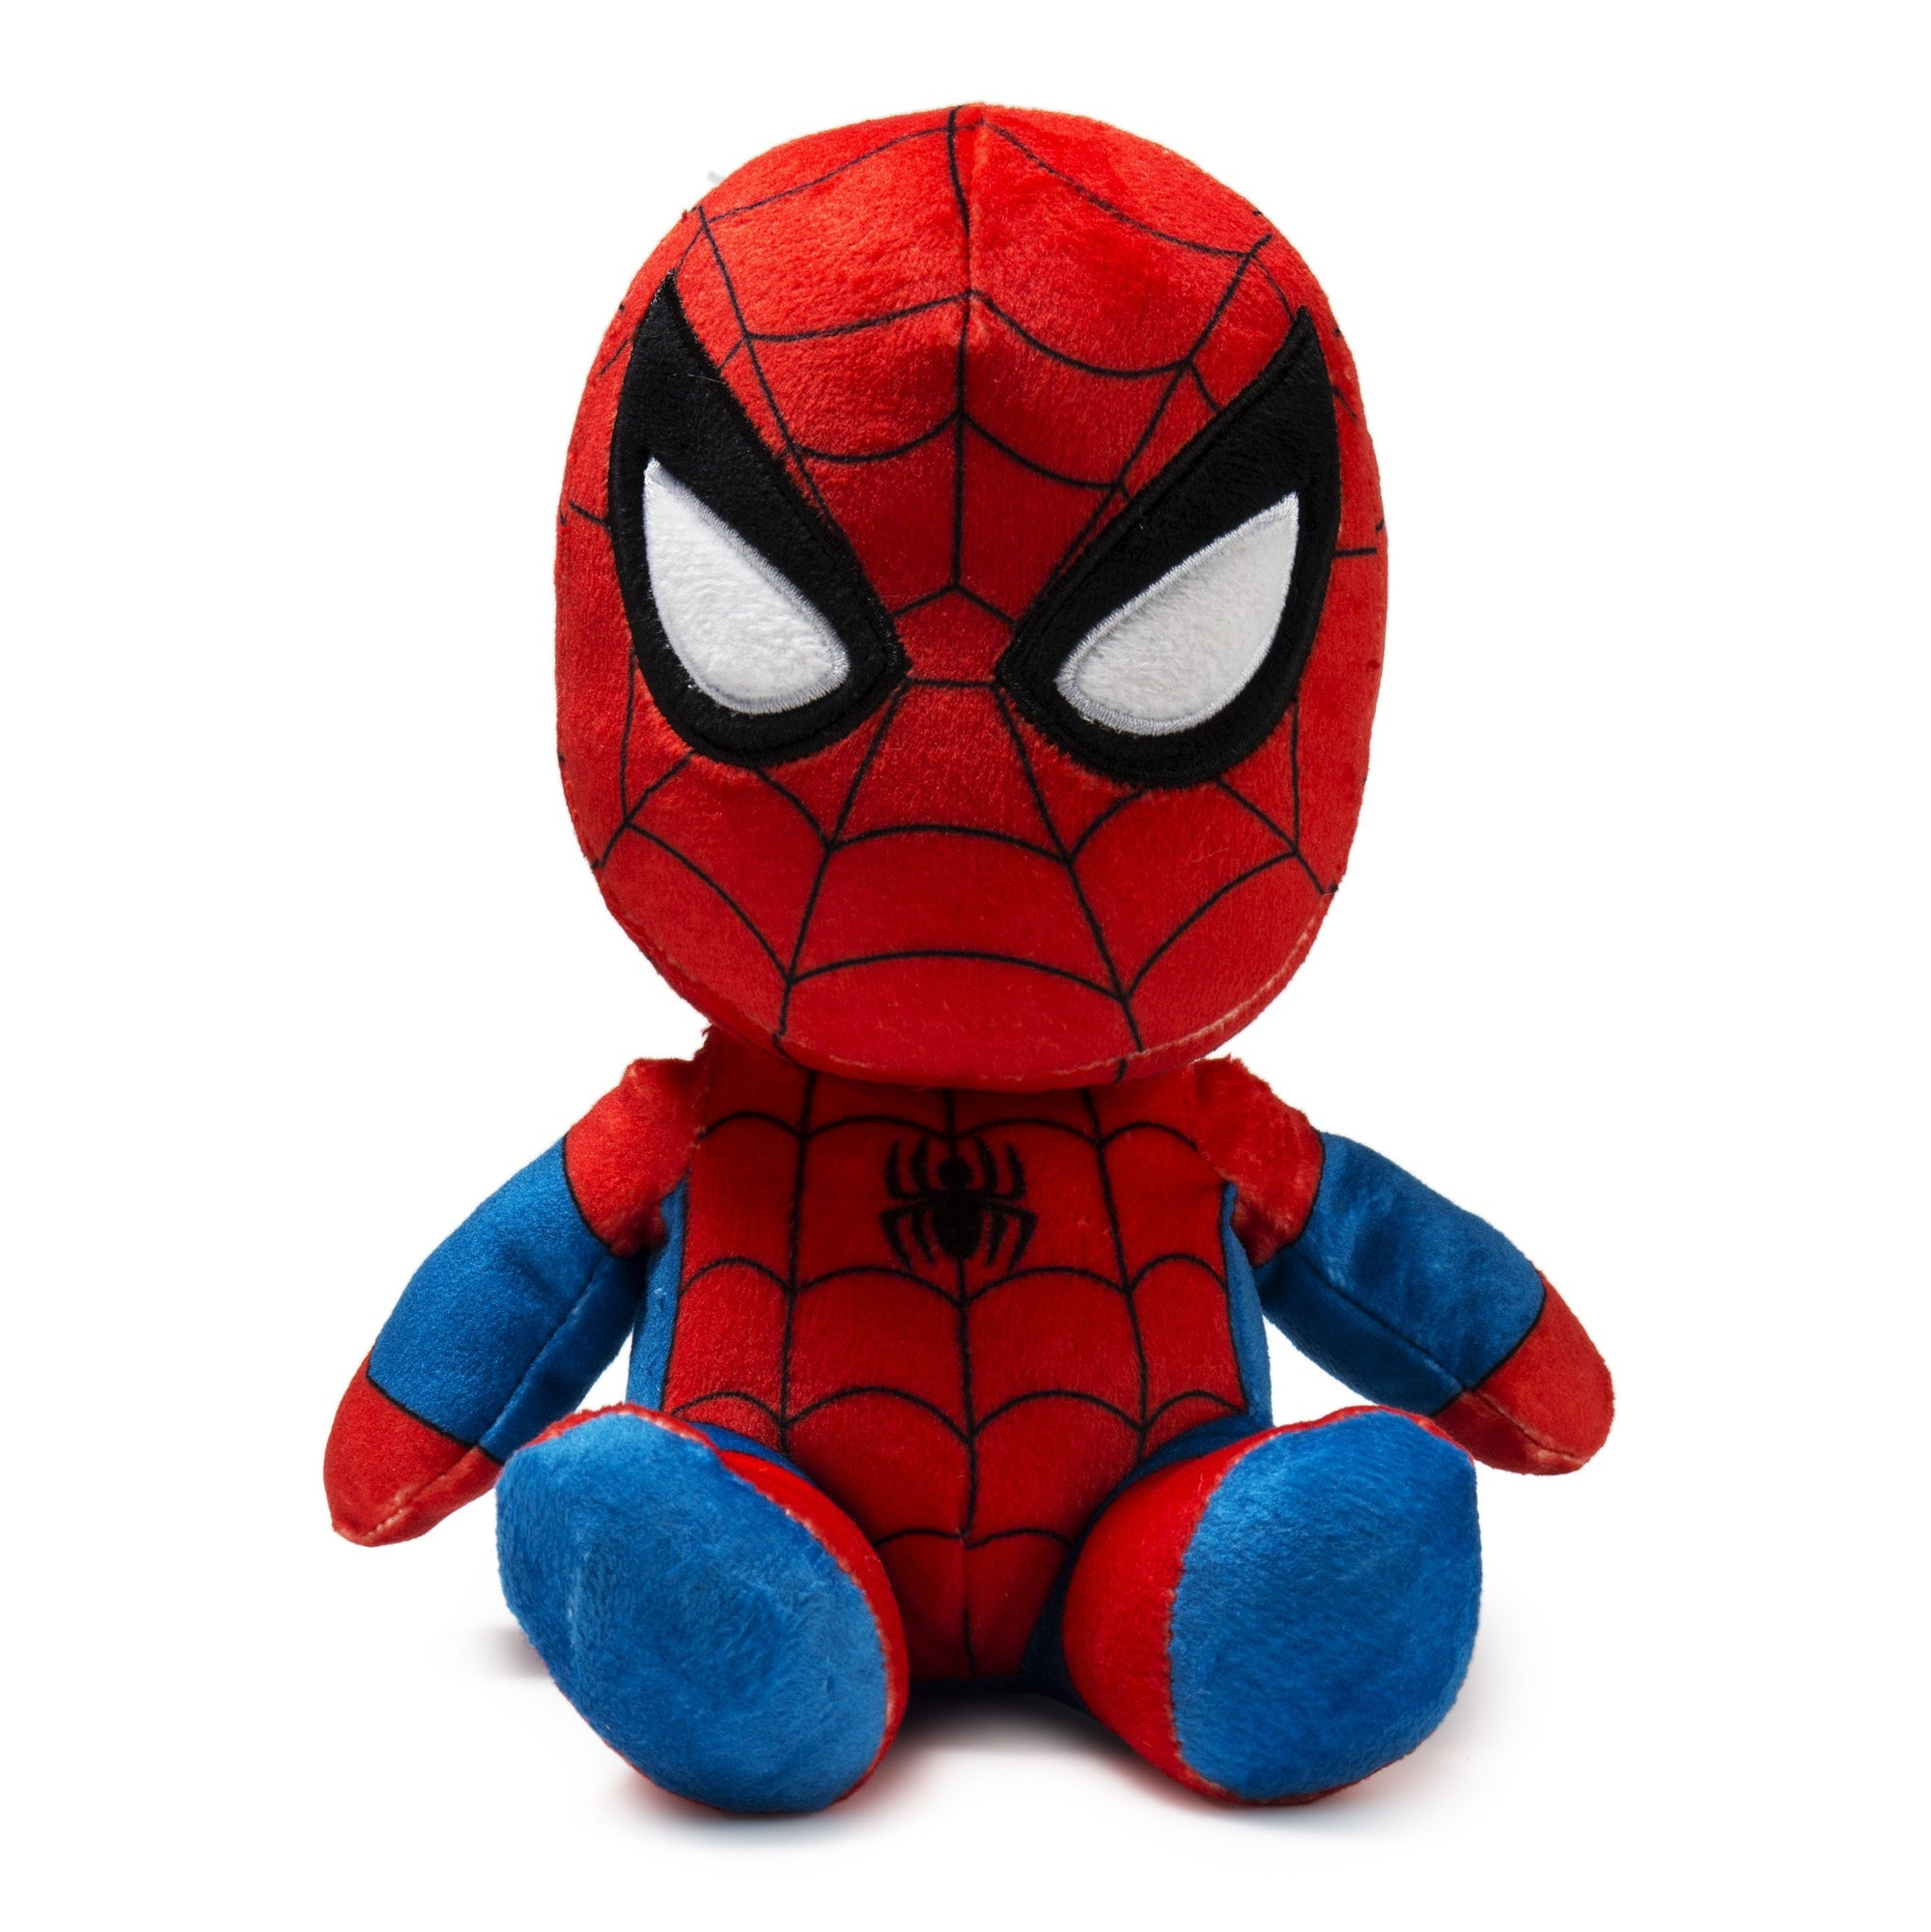 Marvel Spiderman Phunny Plush by Kidrobot - Kidrobot - Designer Art Toys